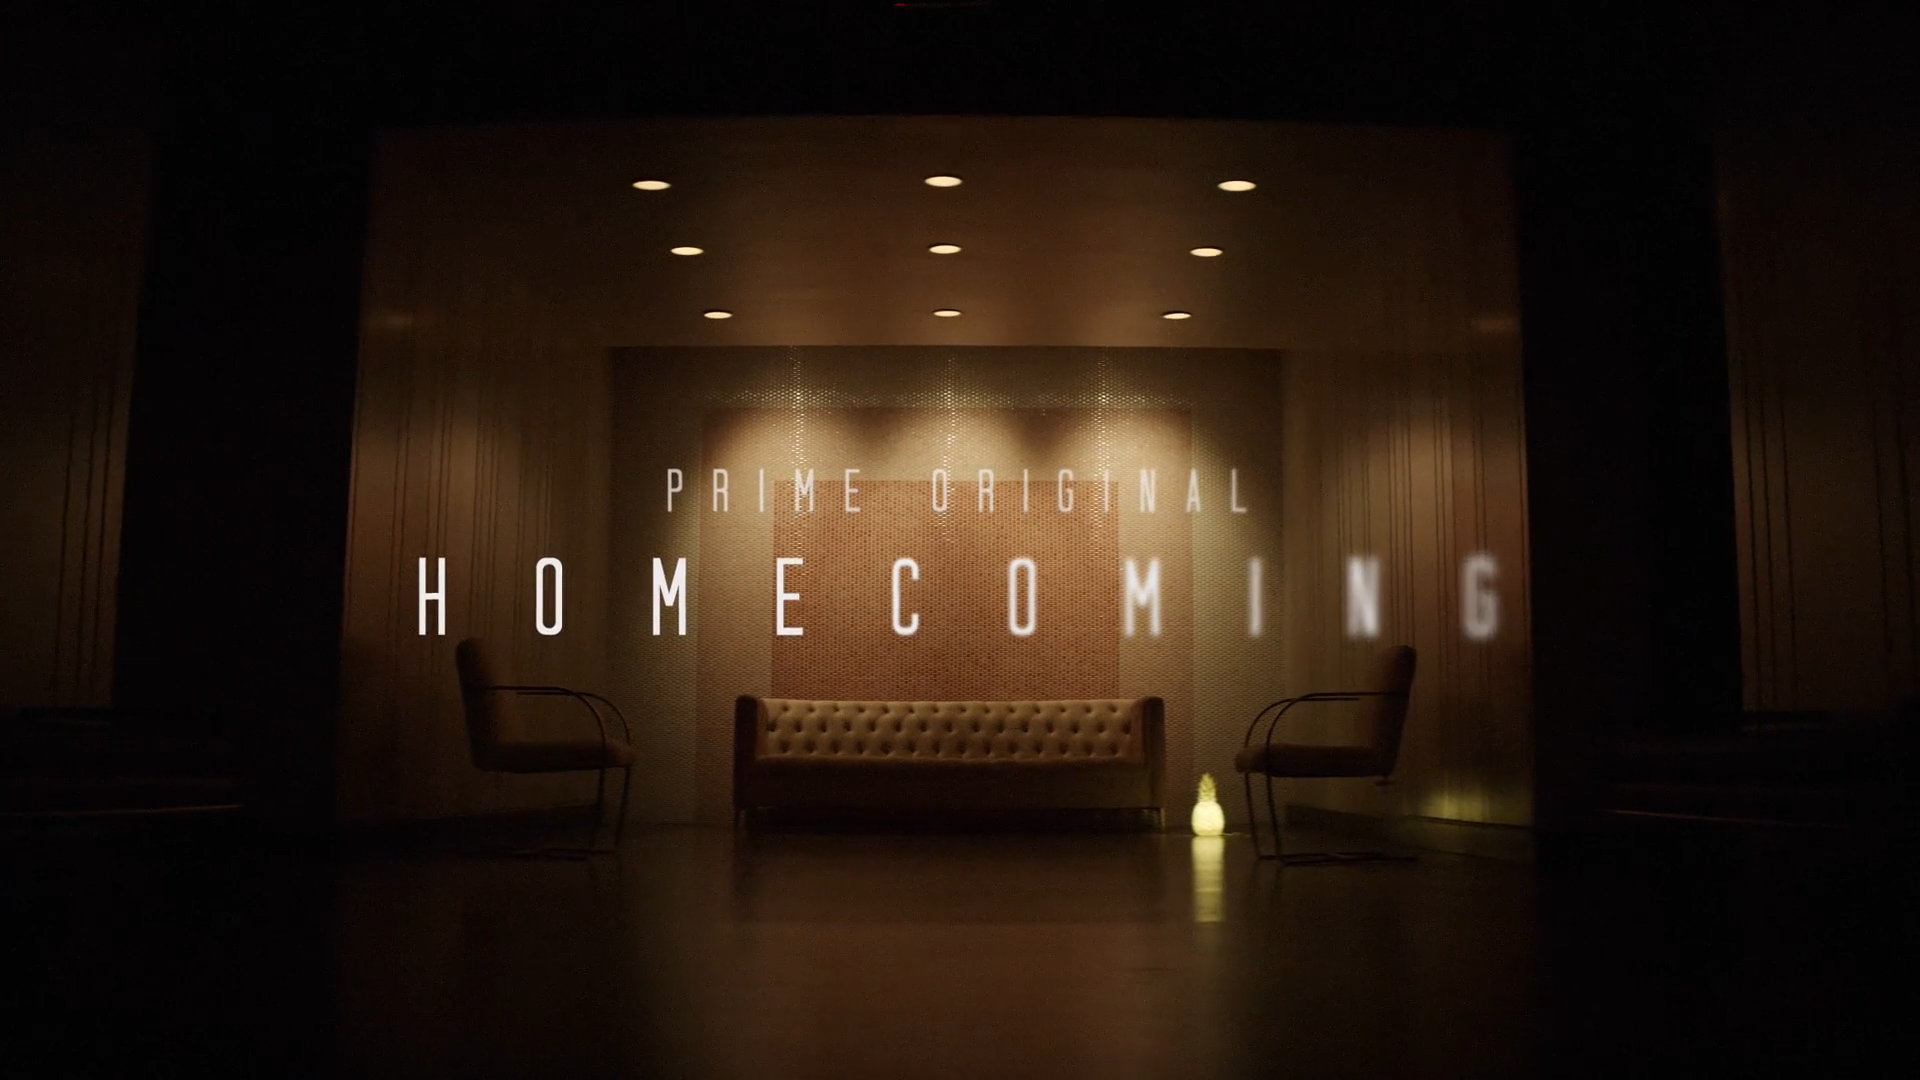 Homecoming__0006_Prime_Original_3.jpg